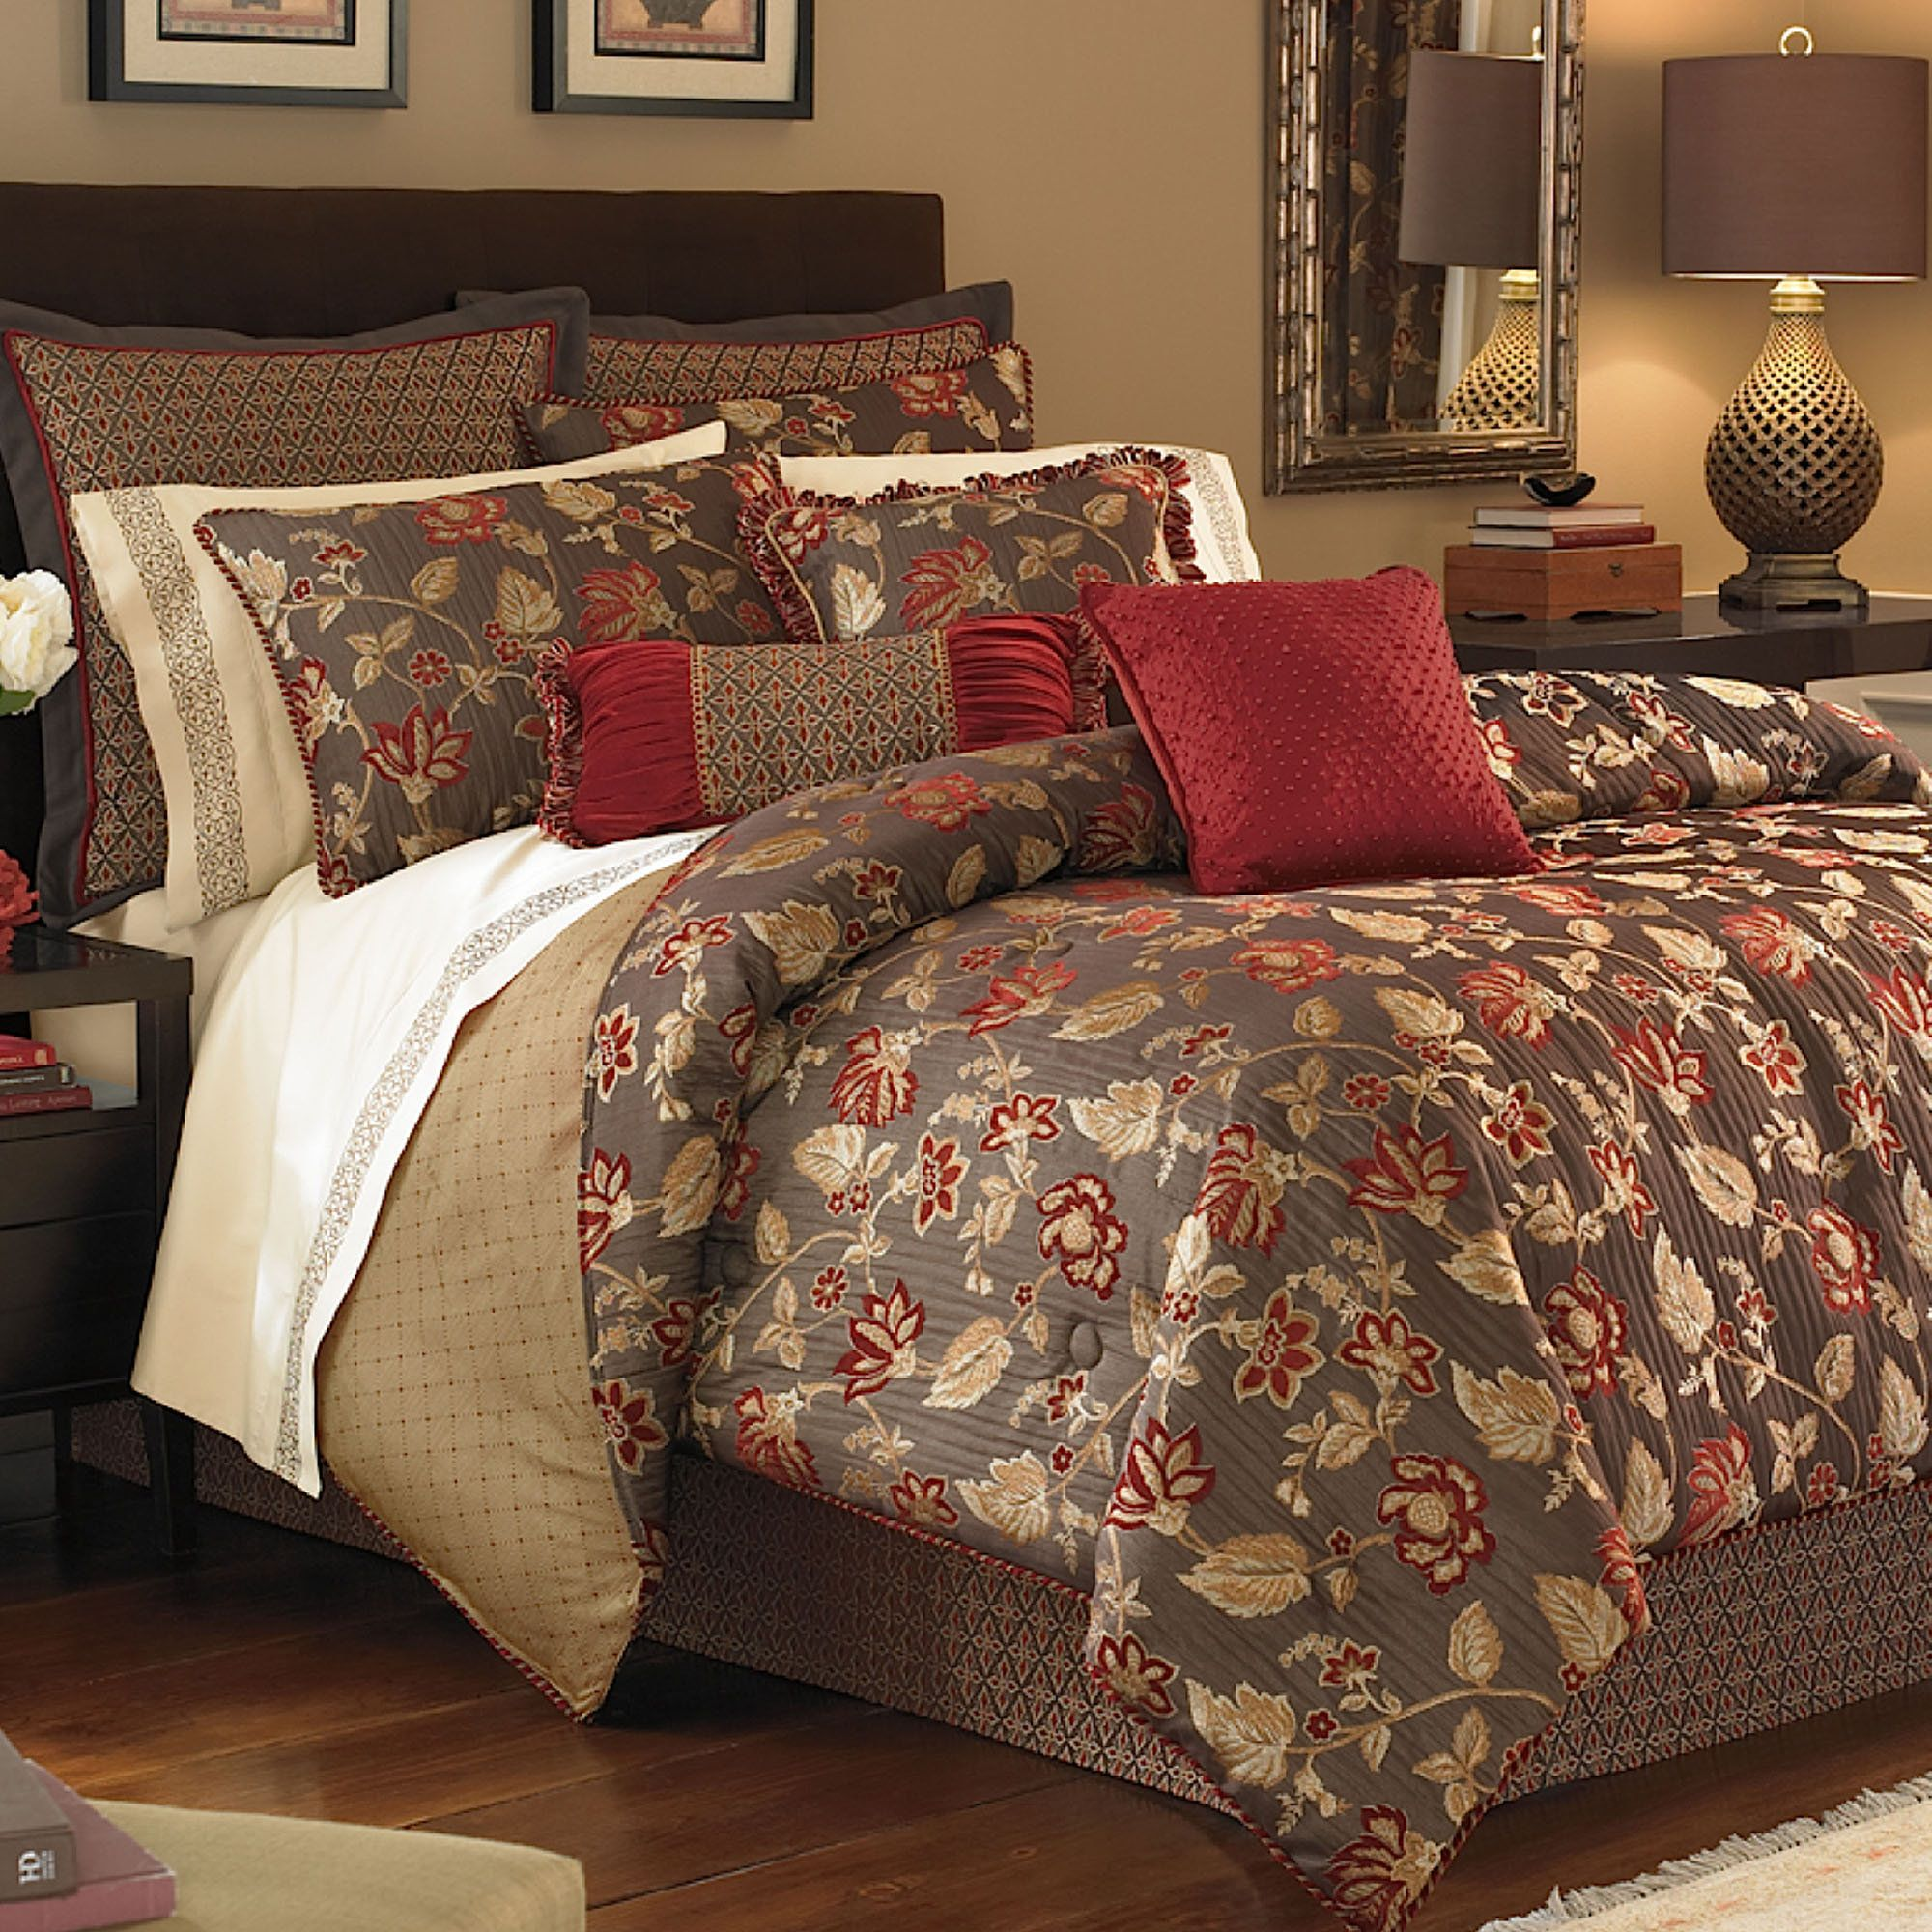 Our Discontinued Croscill Bedding Typically Offers Cotton Or Sa Sheet Sets With 300 Threads Per Square Inch Description From Touchofcl Com